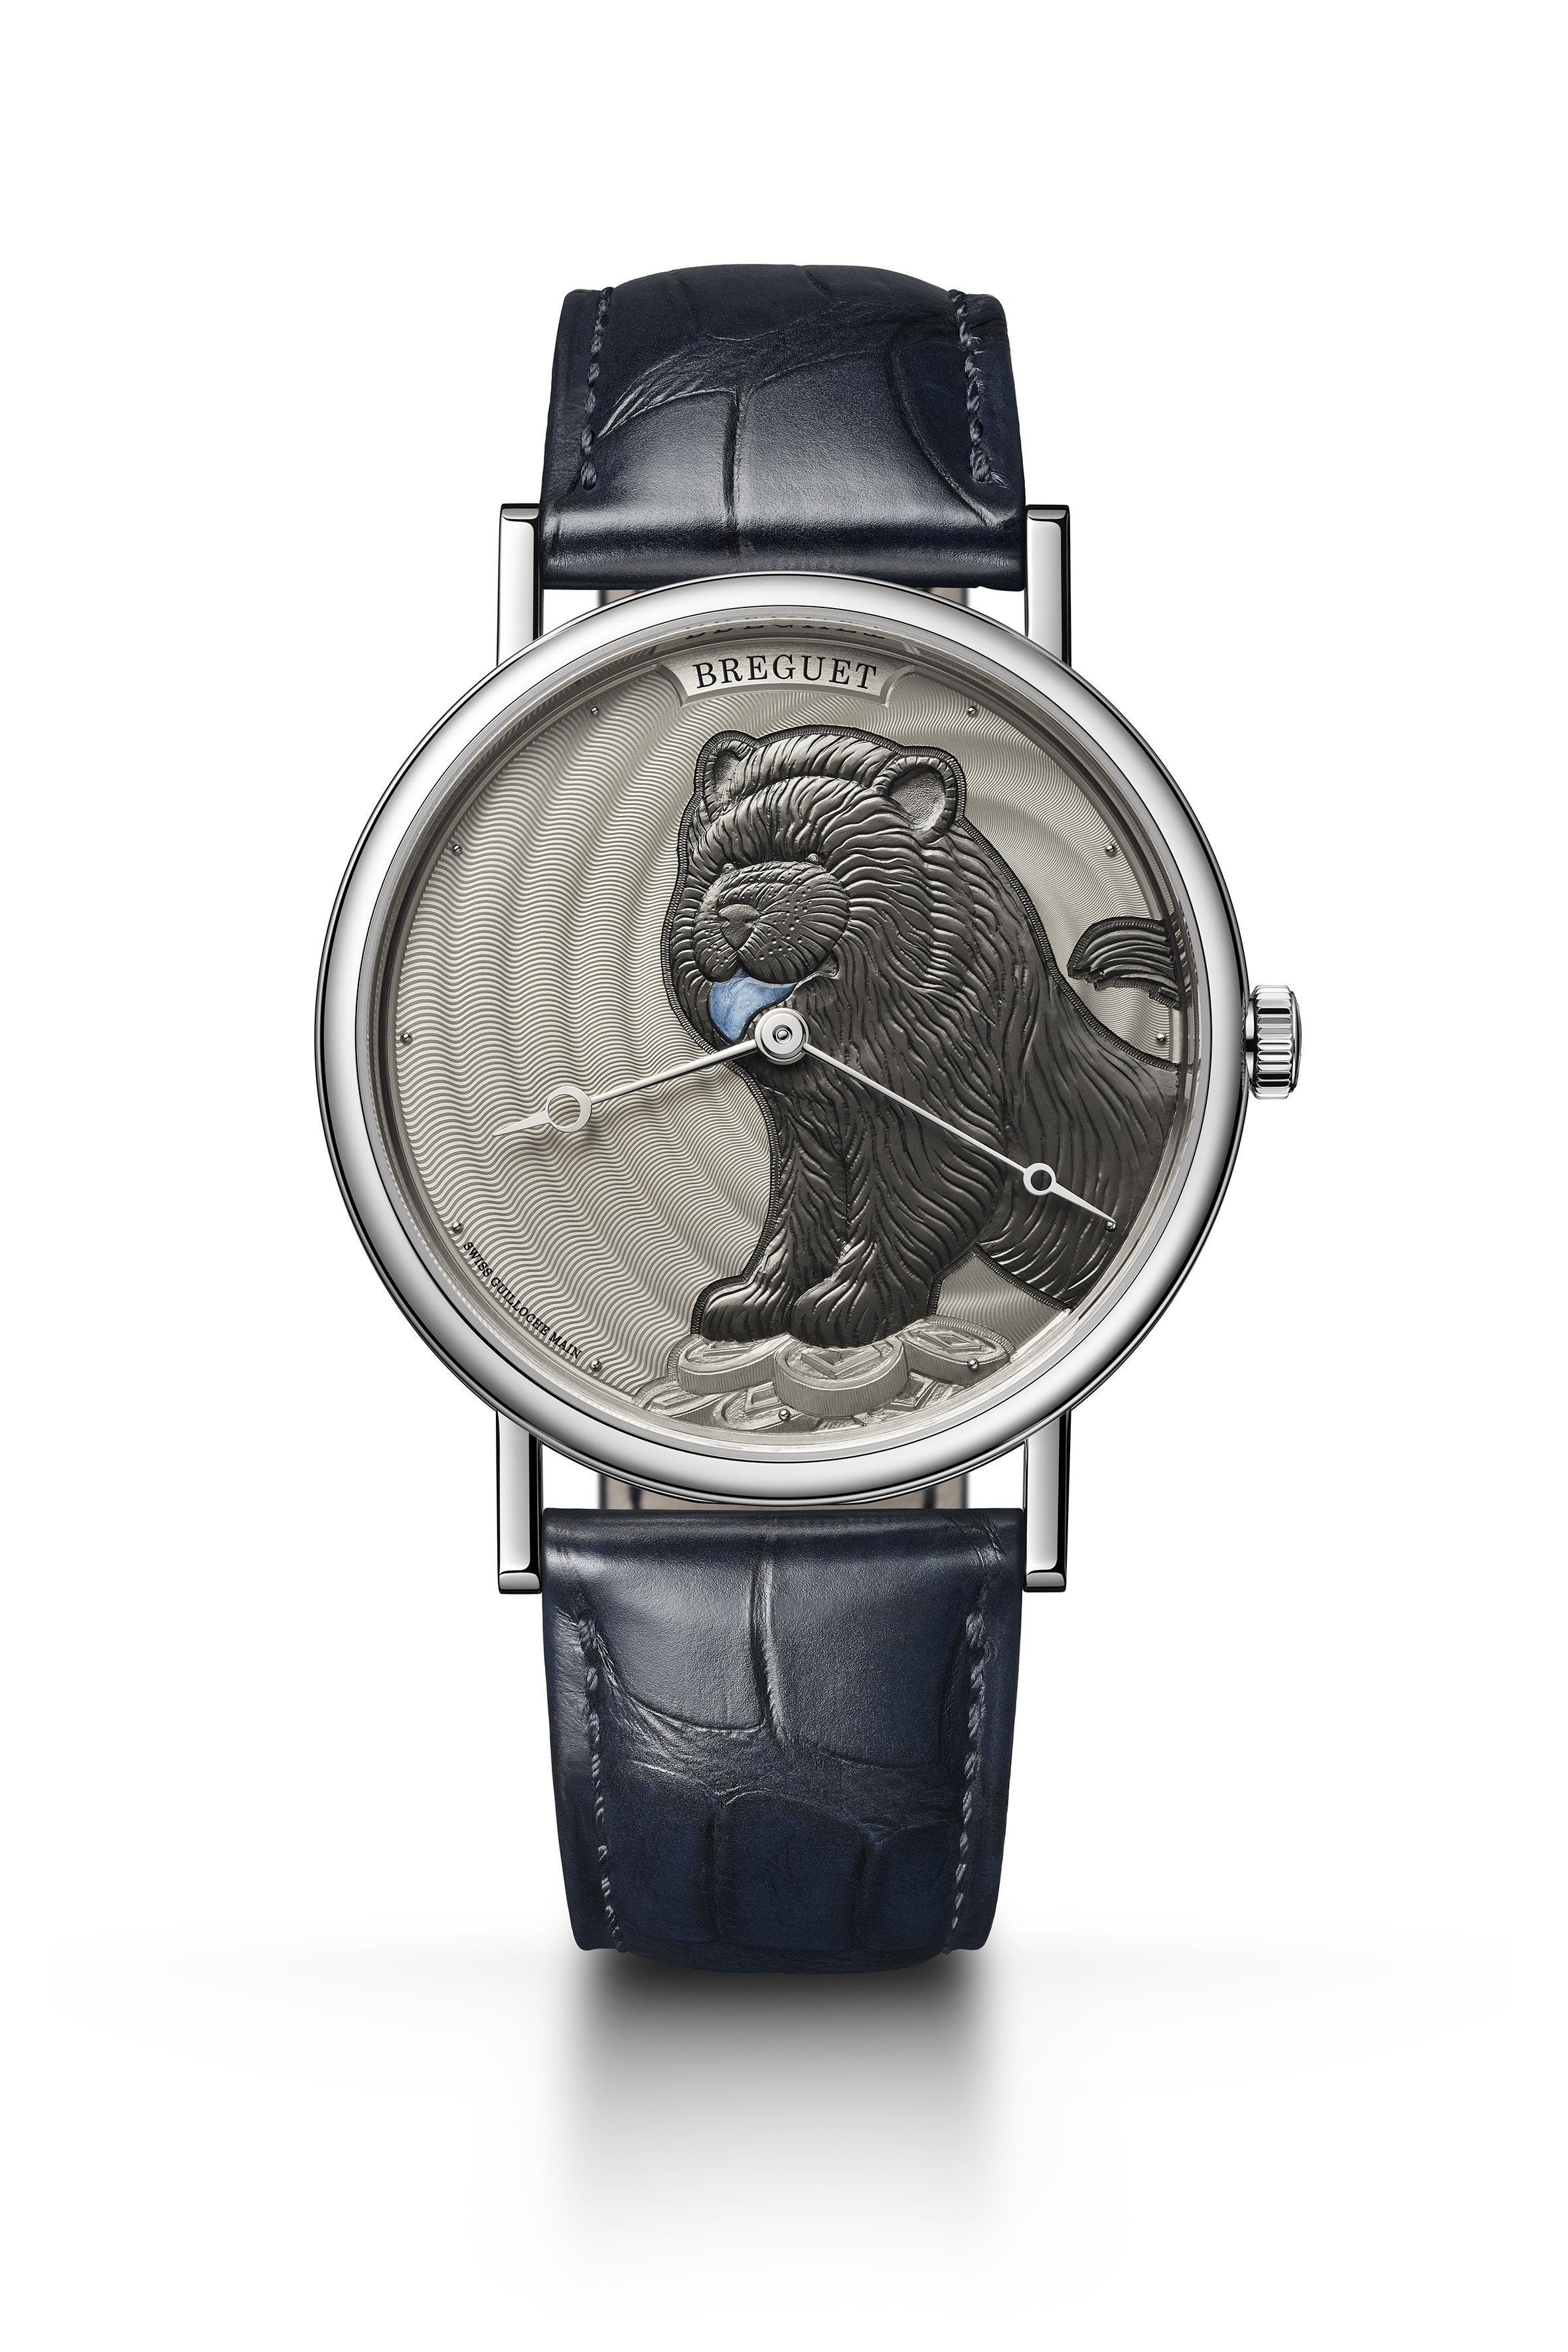 Breguet Classique 7145 Chow-chow Year of the Dog, $42,000